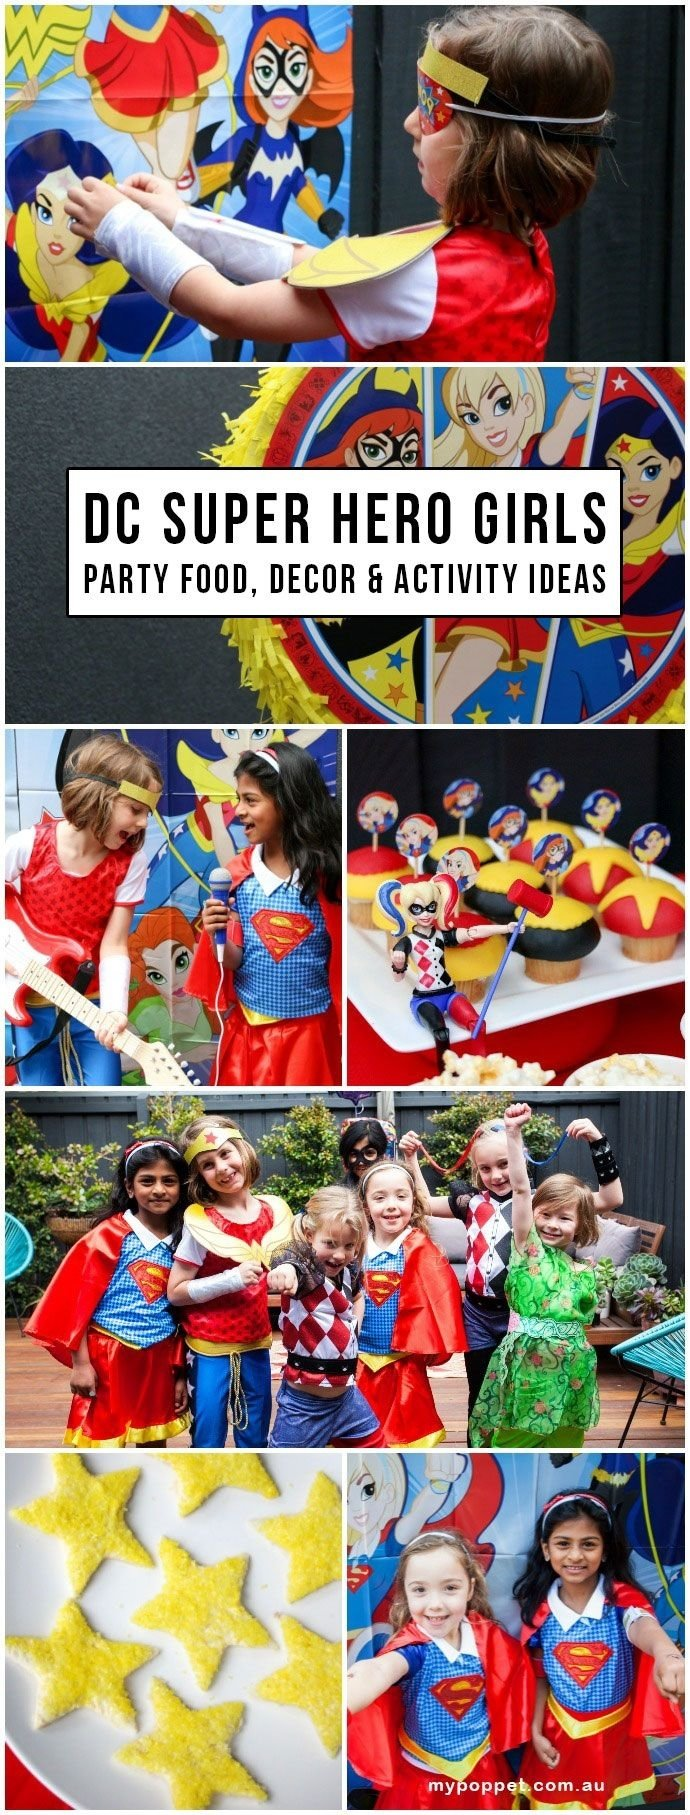 emma's 'dc super hero girls' party - fun party food, decorating